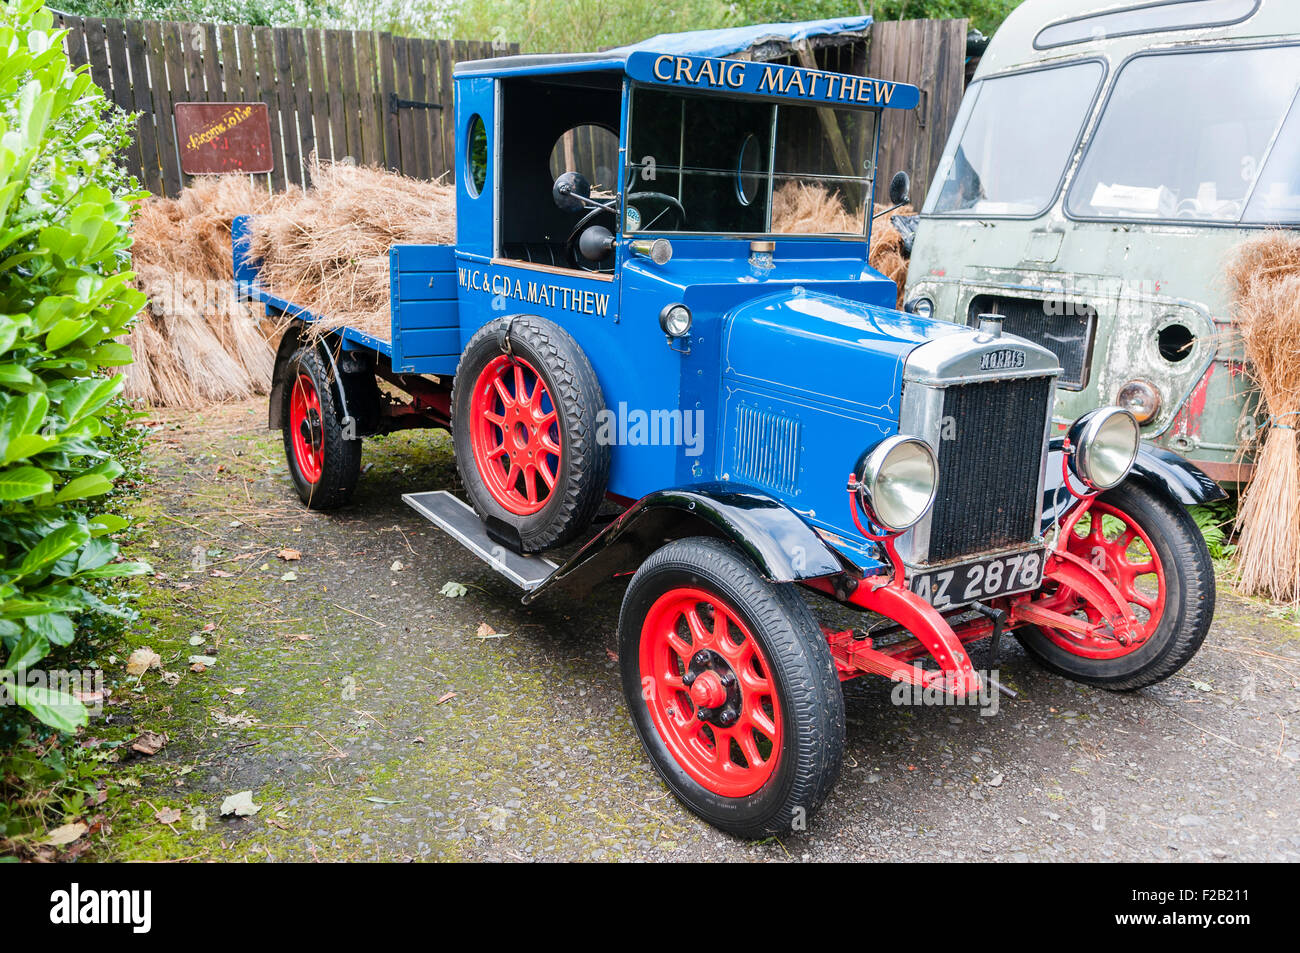 "Bundles of flax on the back of a vintage flatbed lorry with the name ""Craig Matthew"" Stock Photo"